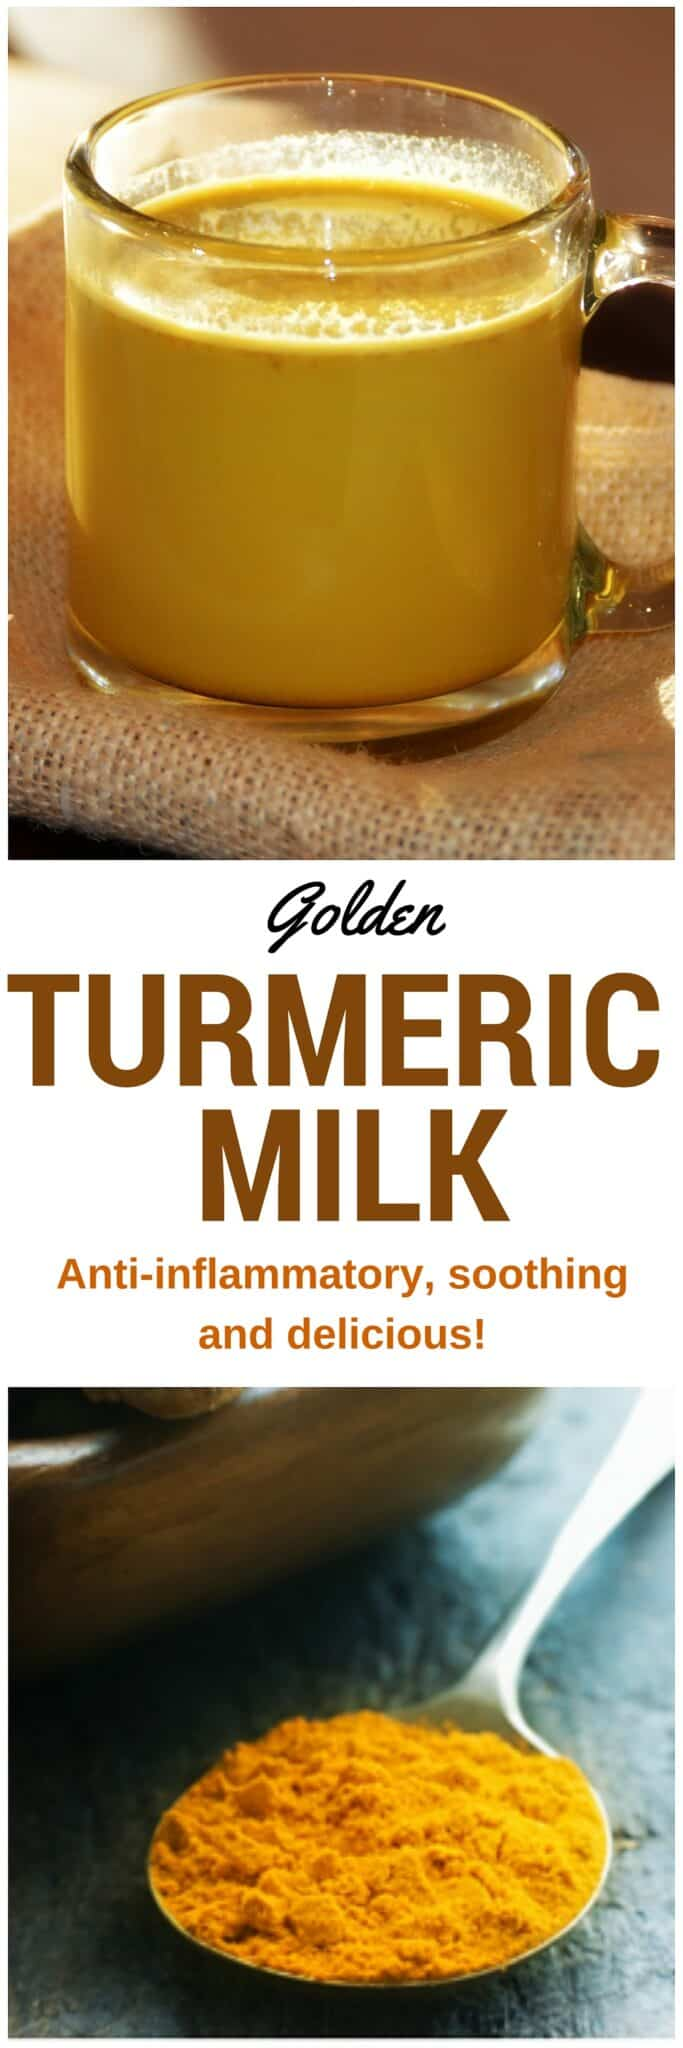 Such a delicious, soothing anti-inflammatory drink! It's really helped my joint pain, too.